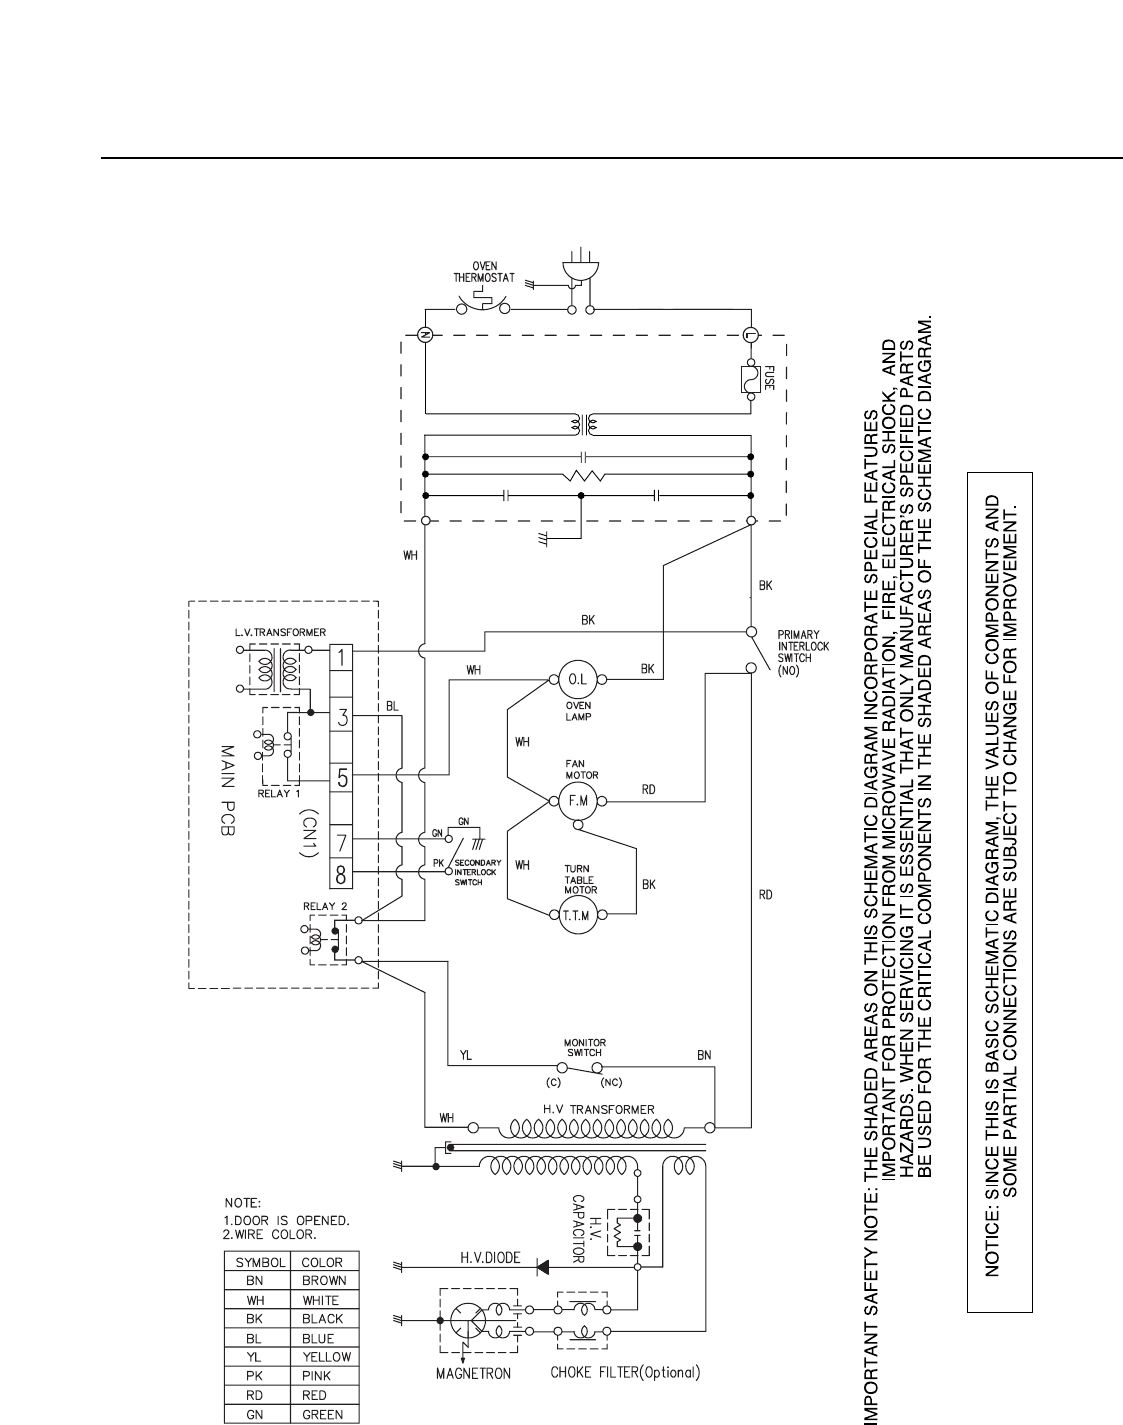 hight resolution of lg microwave oven circuit diagram wiring diagrams lg microwave oven schematic diagram wiring schematics and diagrams wiring diagram of lg split ac